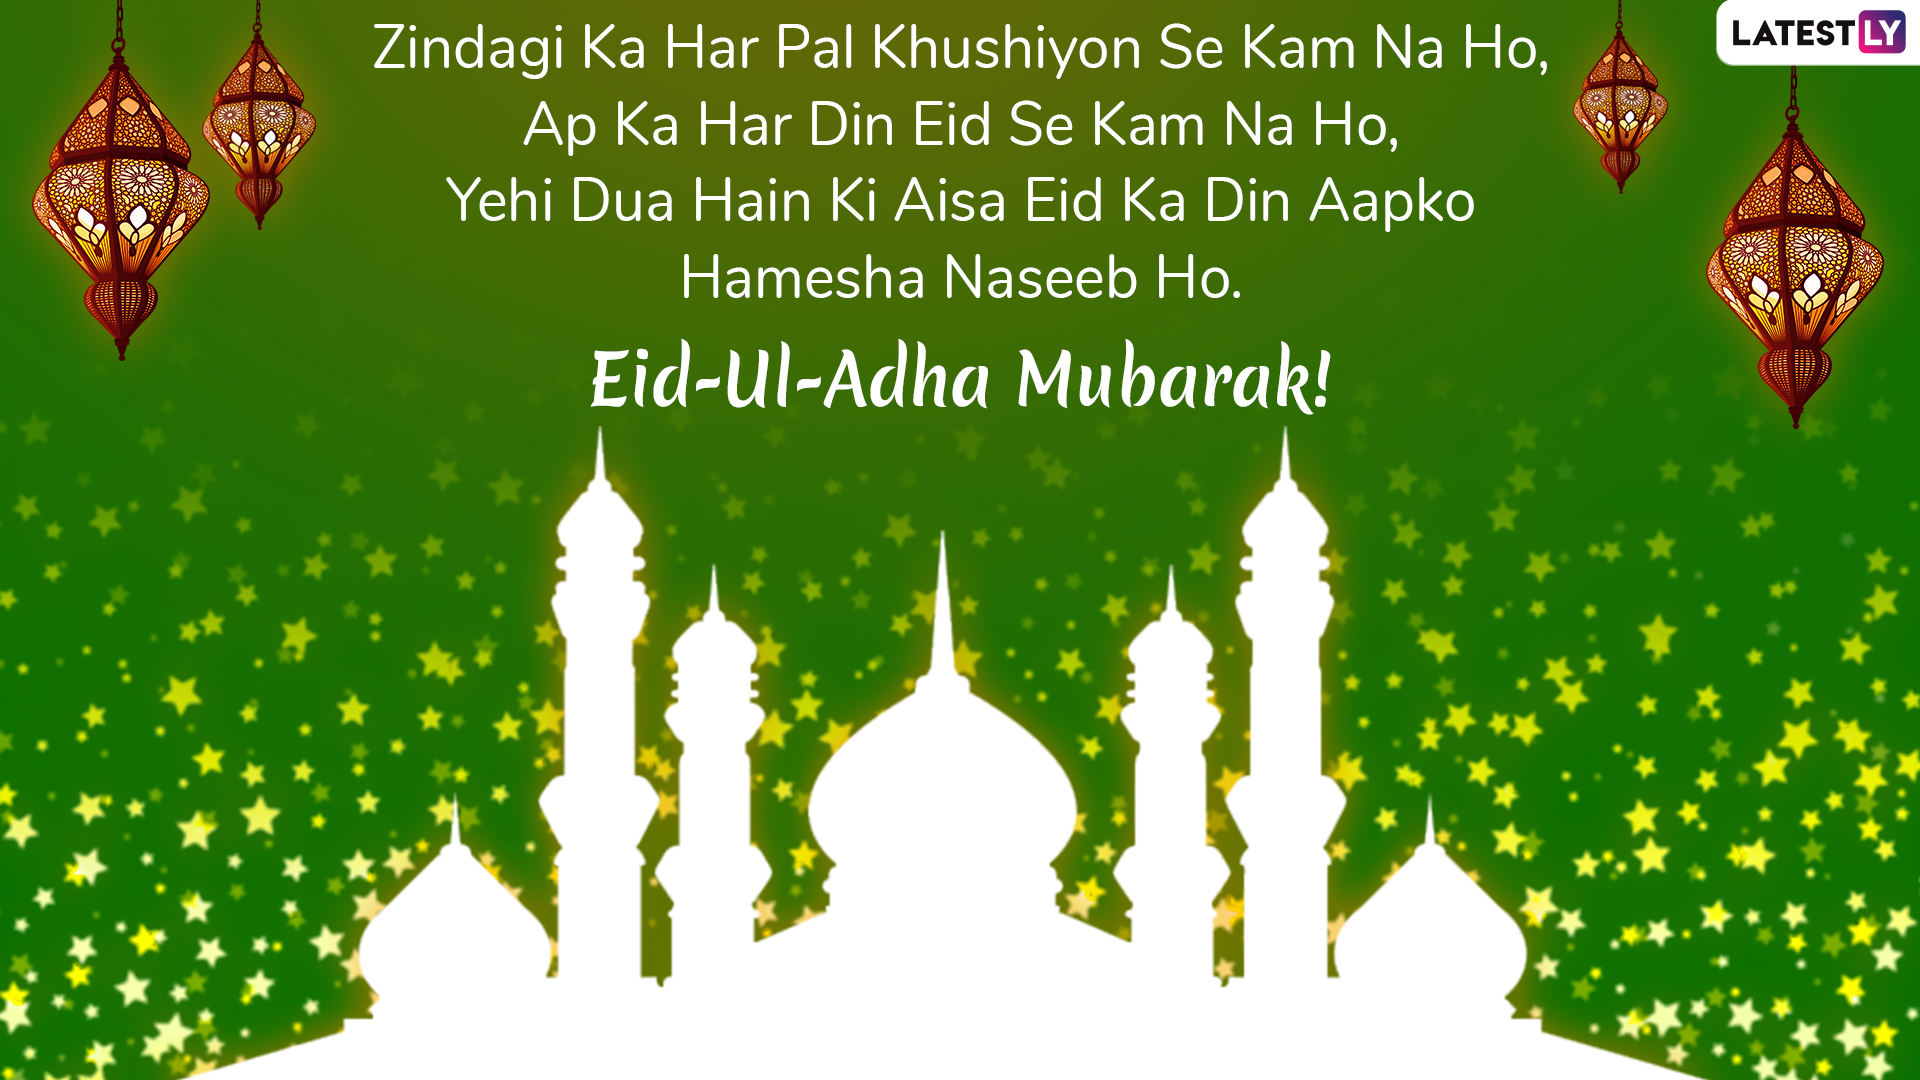 Eid al-Adha 2019 Messages in Hindi: Bakra Eid Mubarak